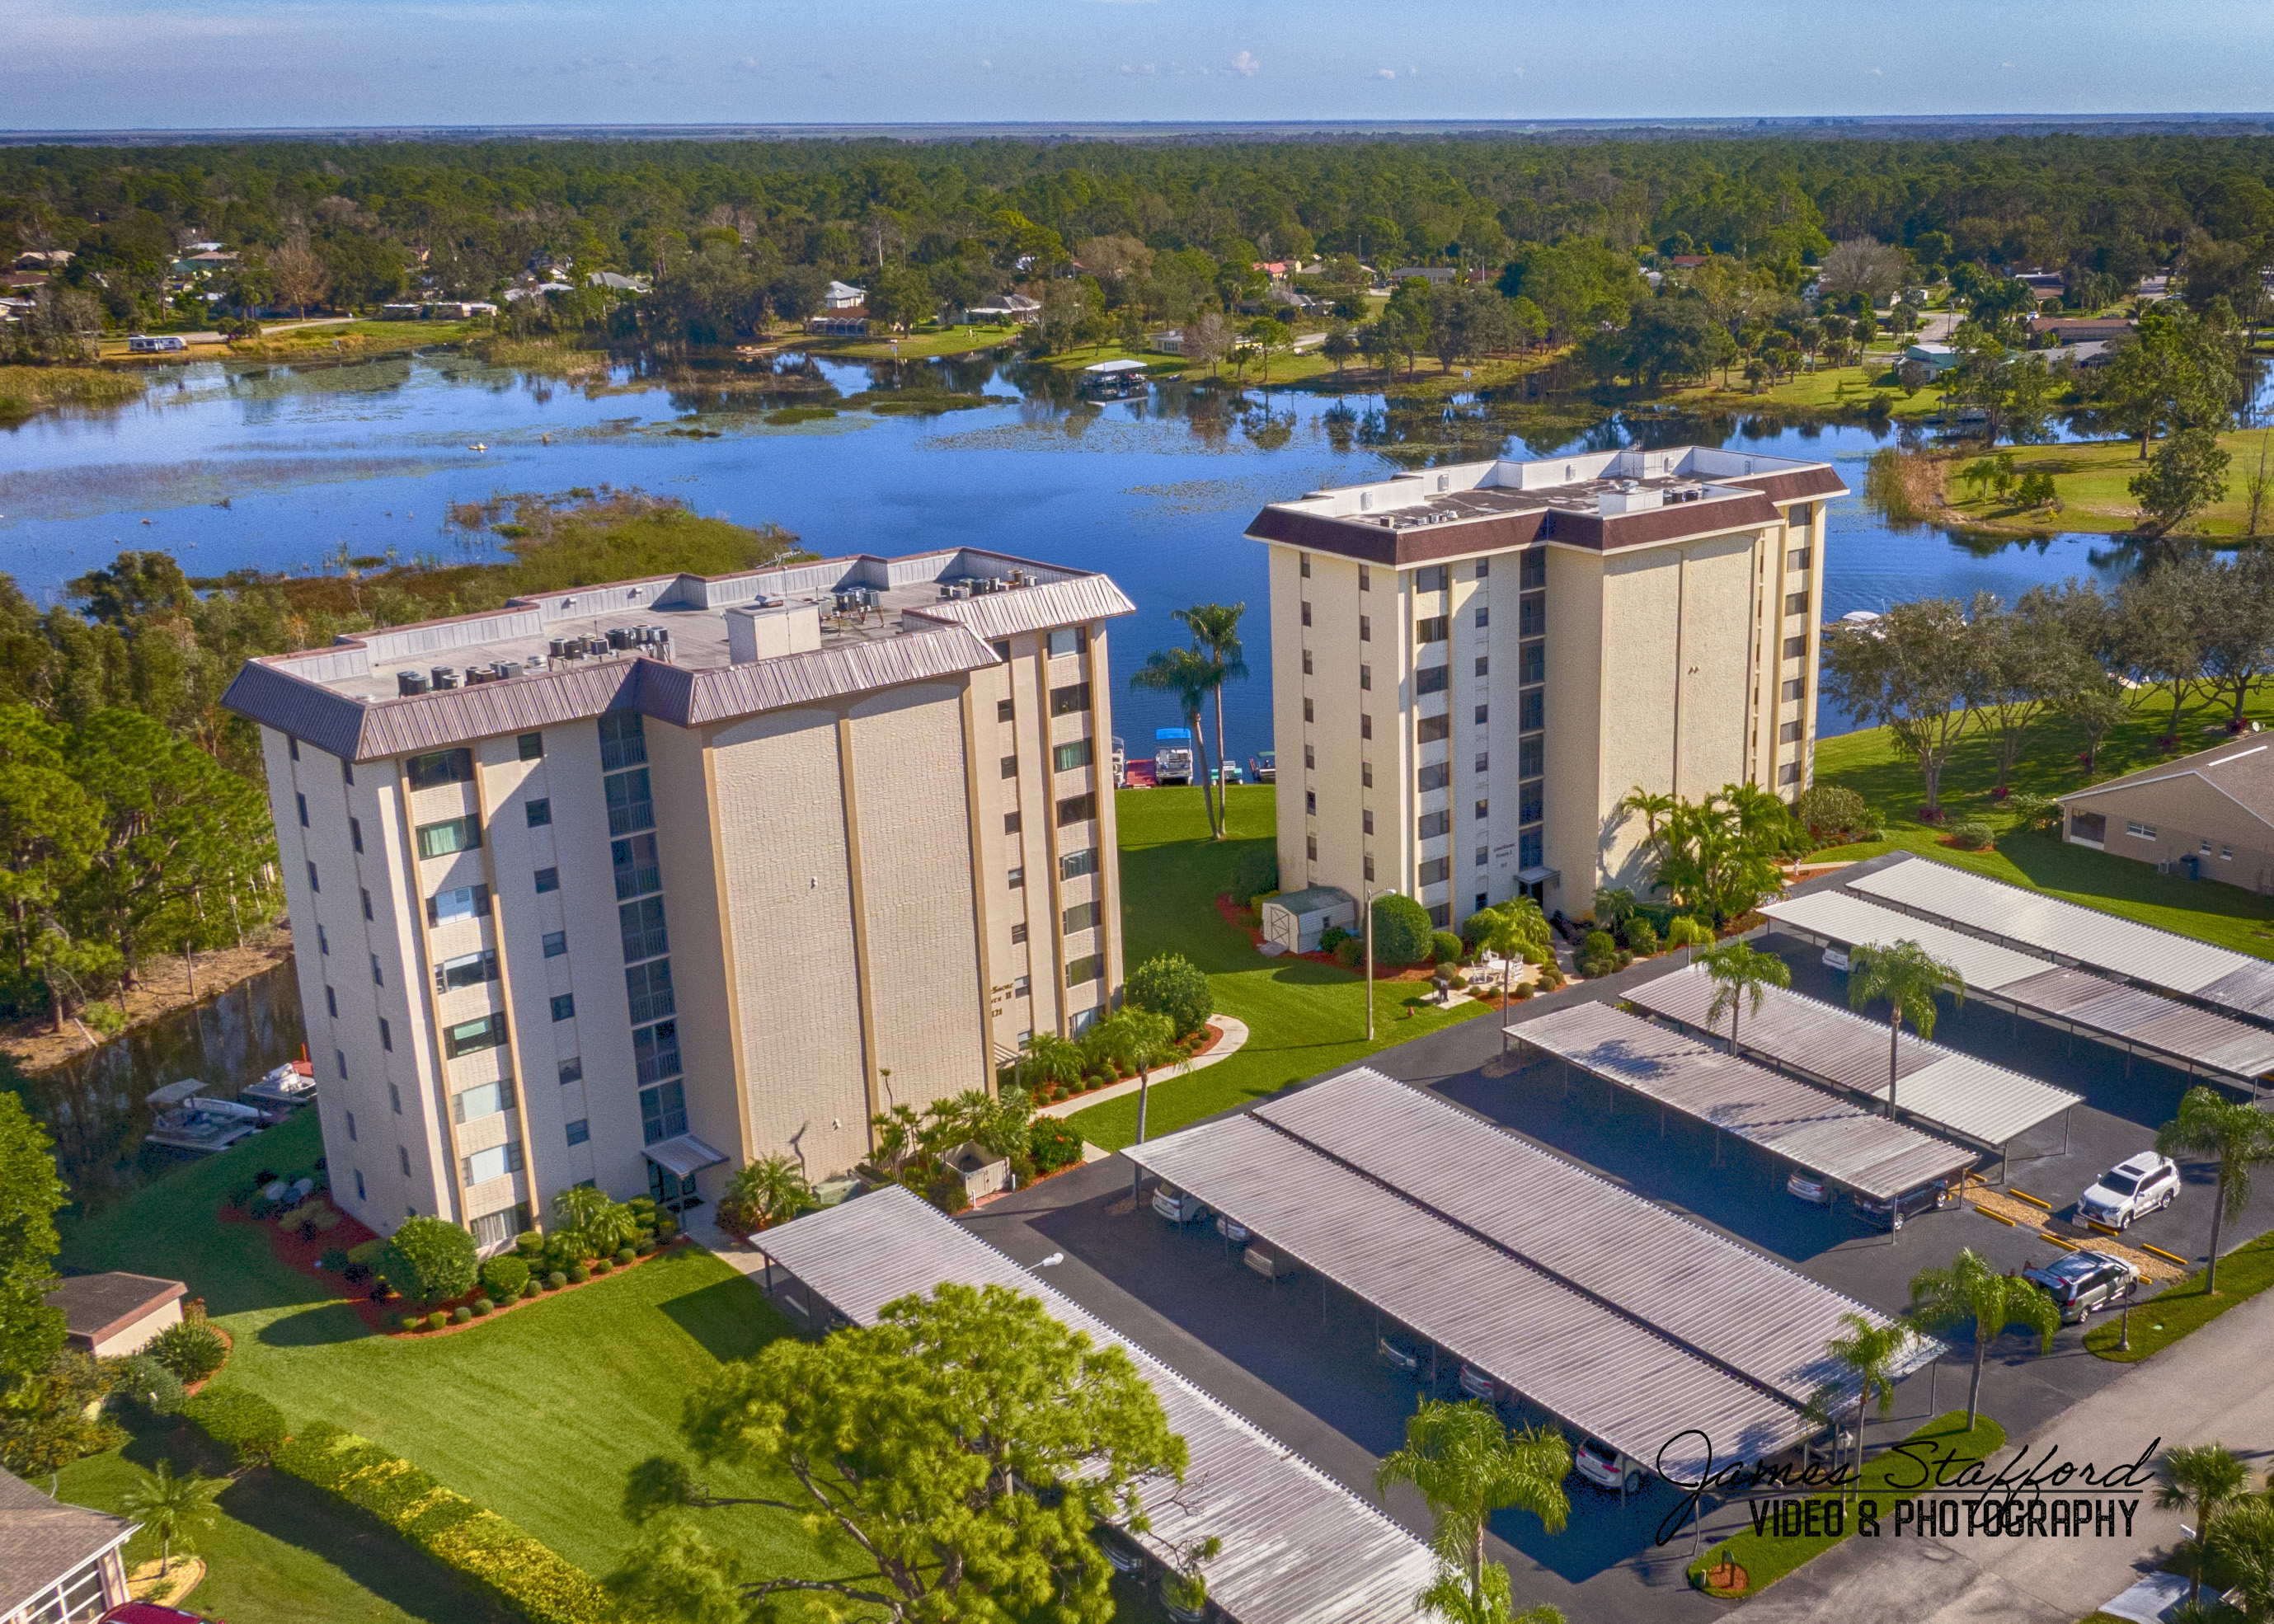 Apartment Building on Lake Grassy in Lake Placid, Florida